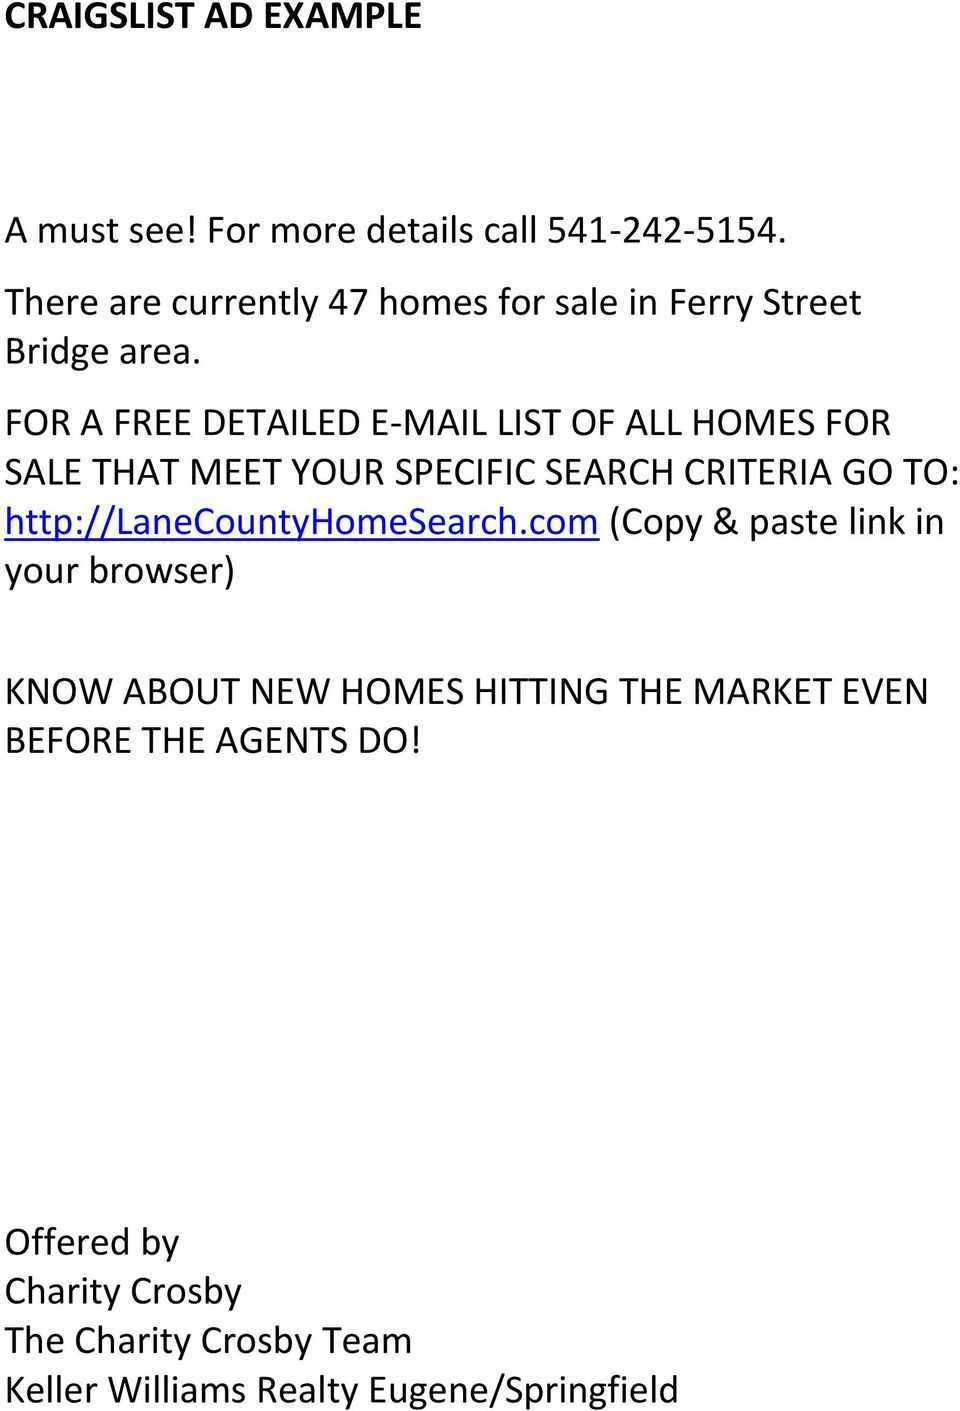 FOR A FREE DETAILED E-MAIL LIST OF ALL HOMES FOR SALE THAT MEET YOUR SPECIFIC SEARCH CRITERIA GO TO: